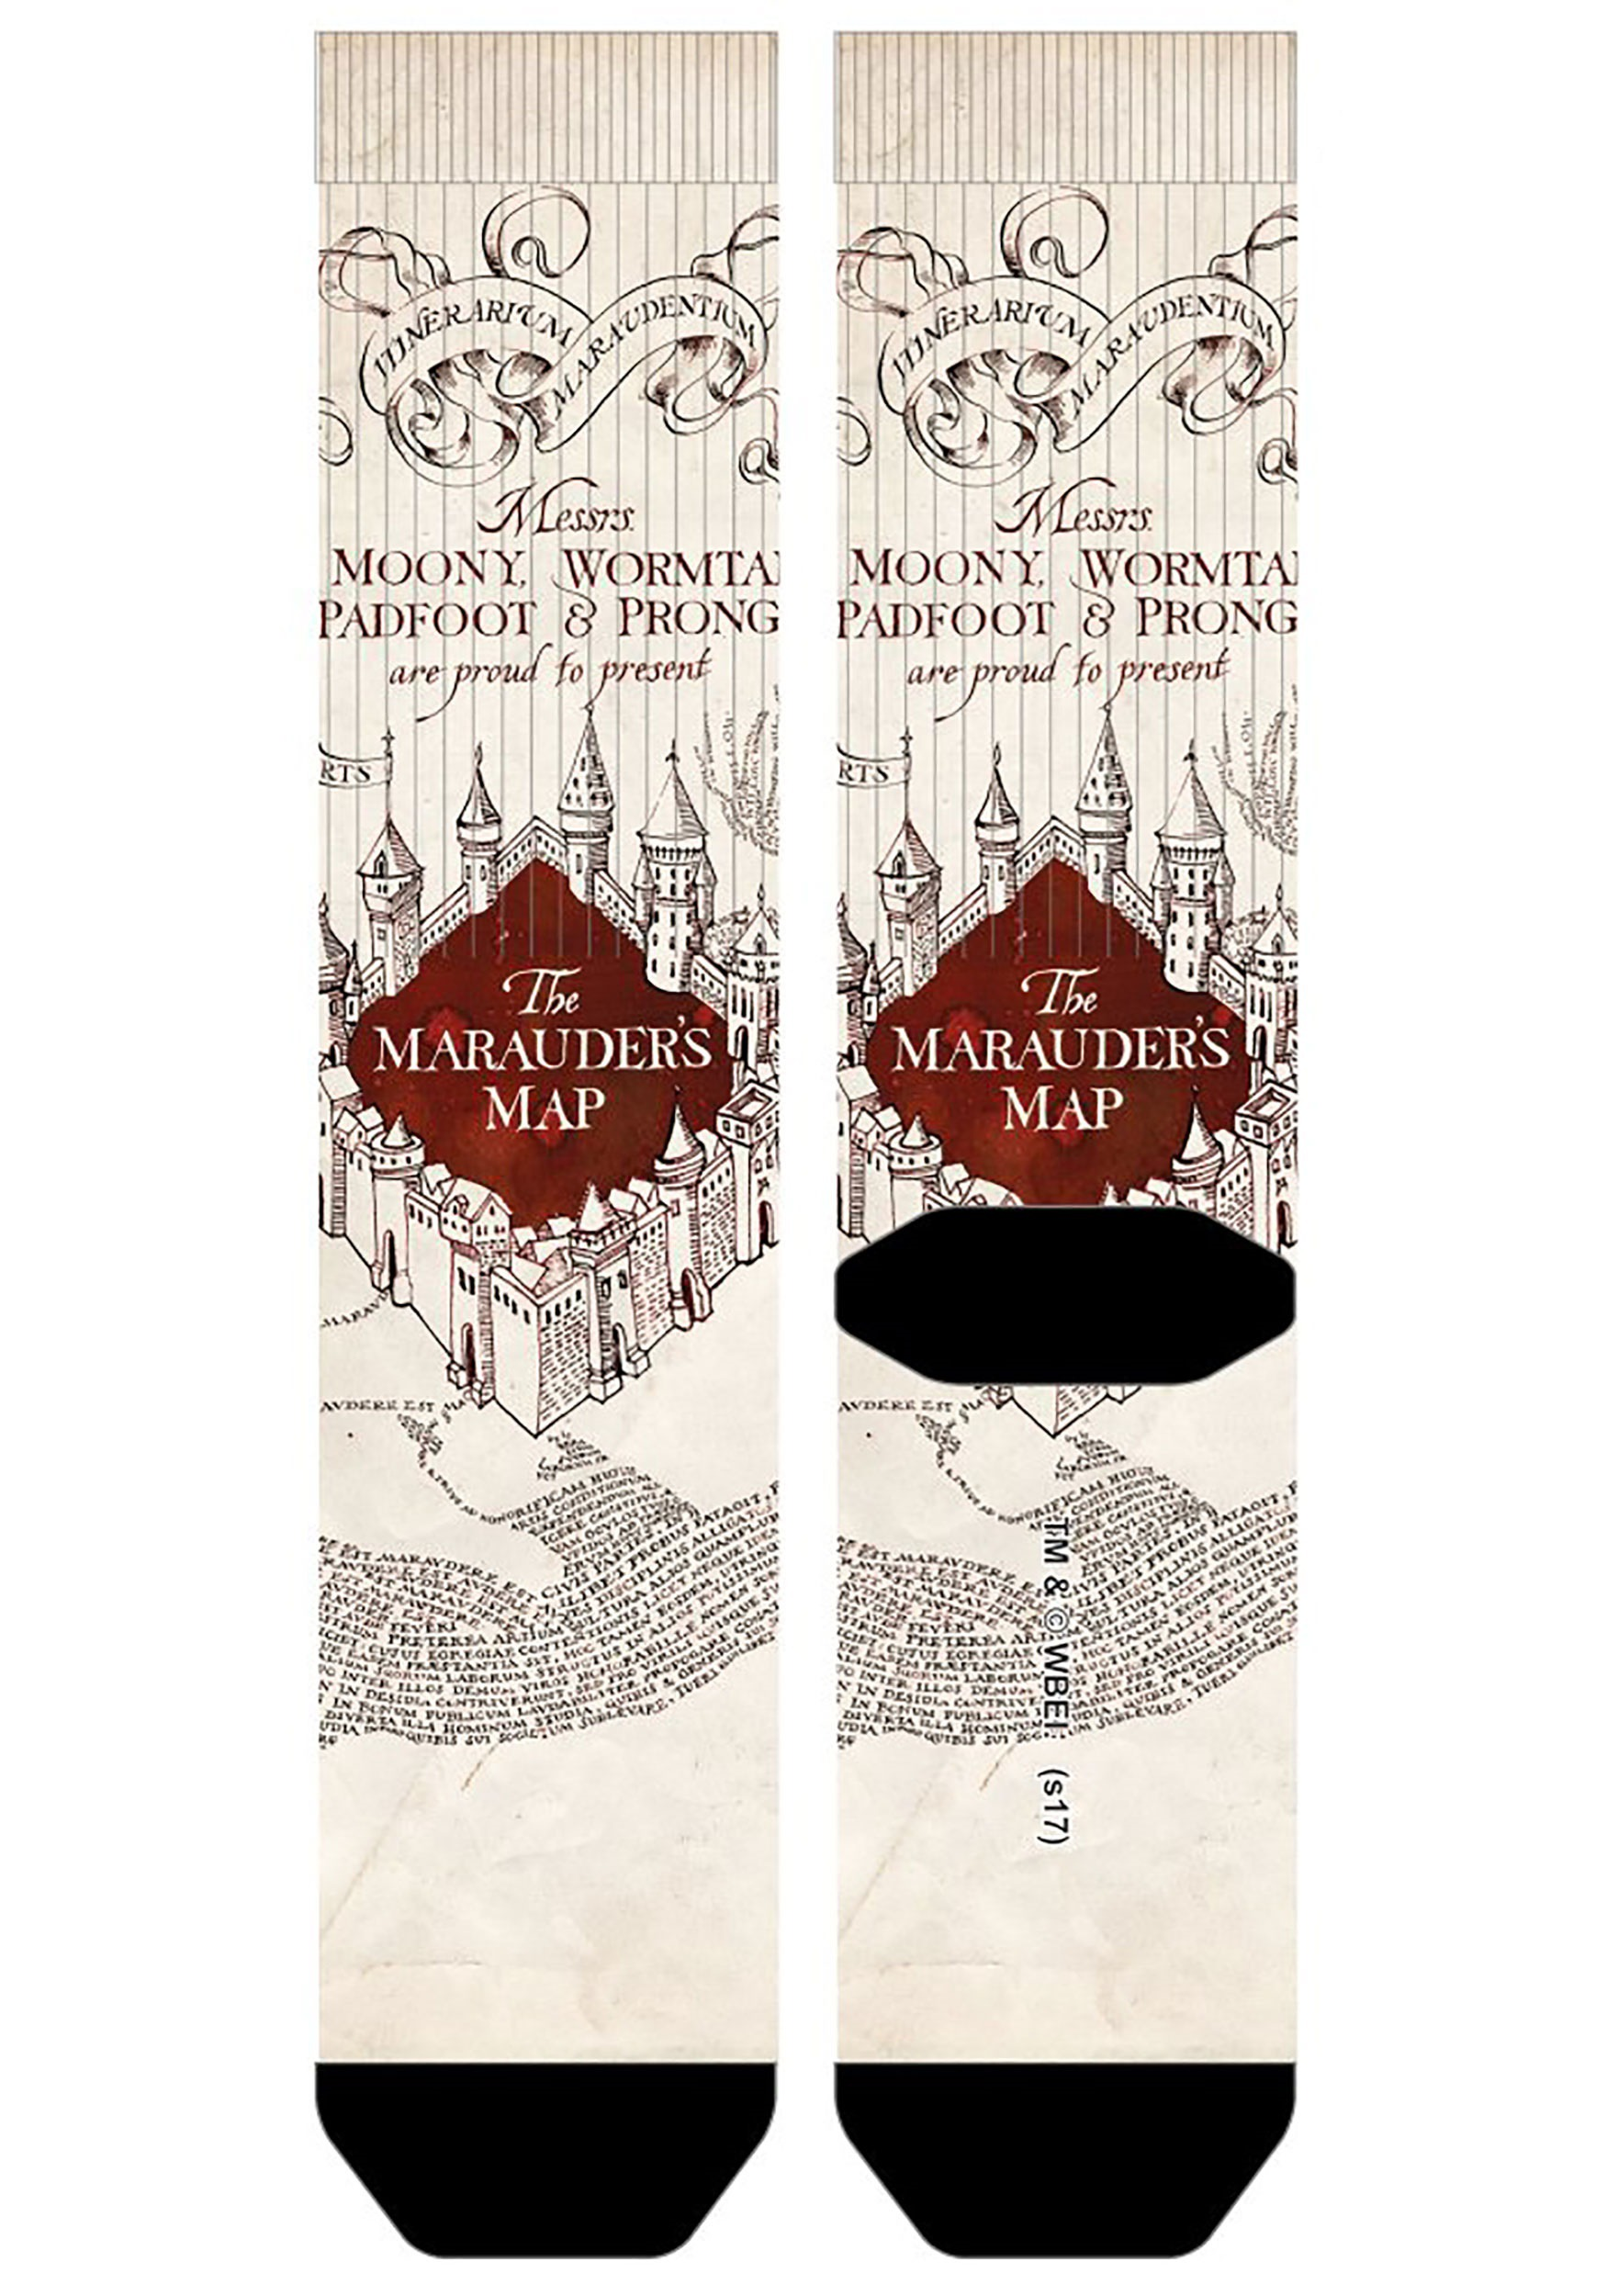 harry potter marauders map sublimated socks. harry potter marauder's map sublimated socks